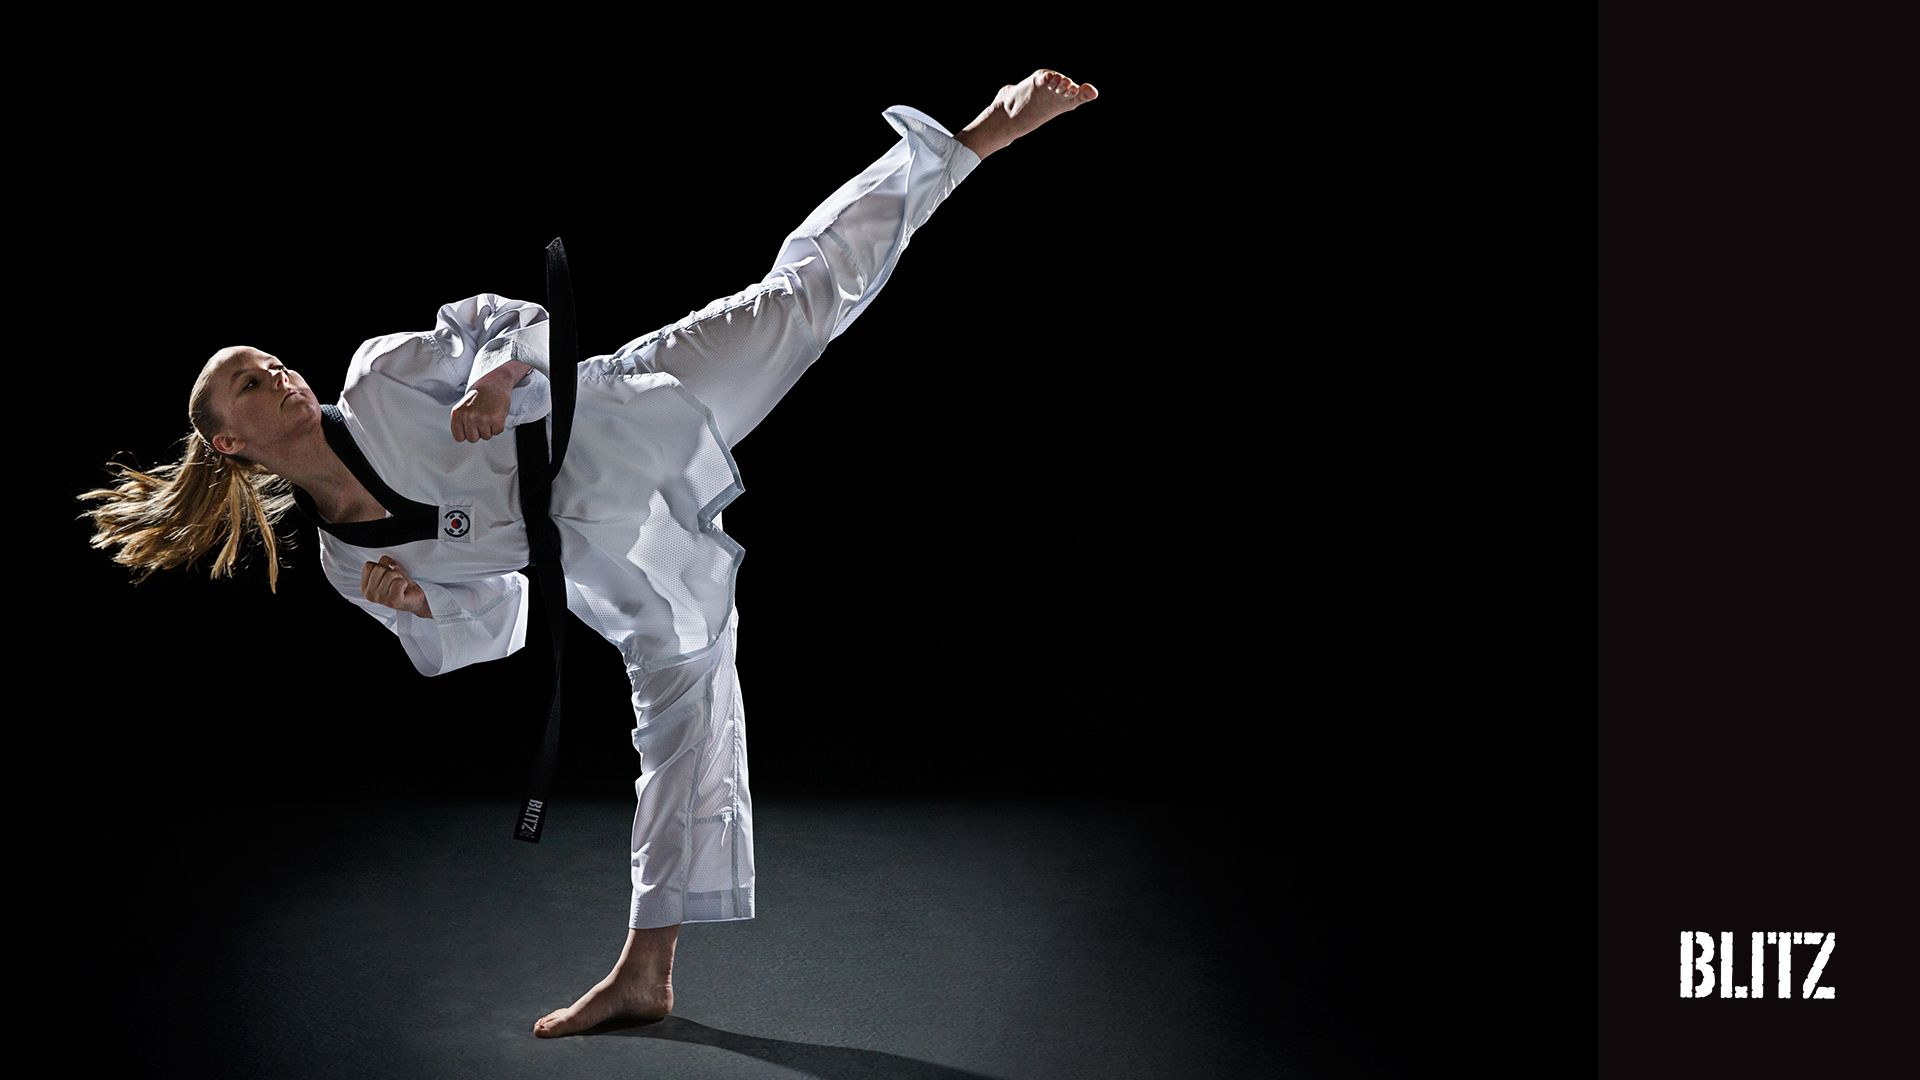 1920x1080 Download the latest Martial Arts wallpapers from Blitz